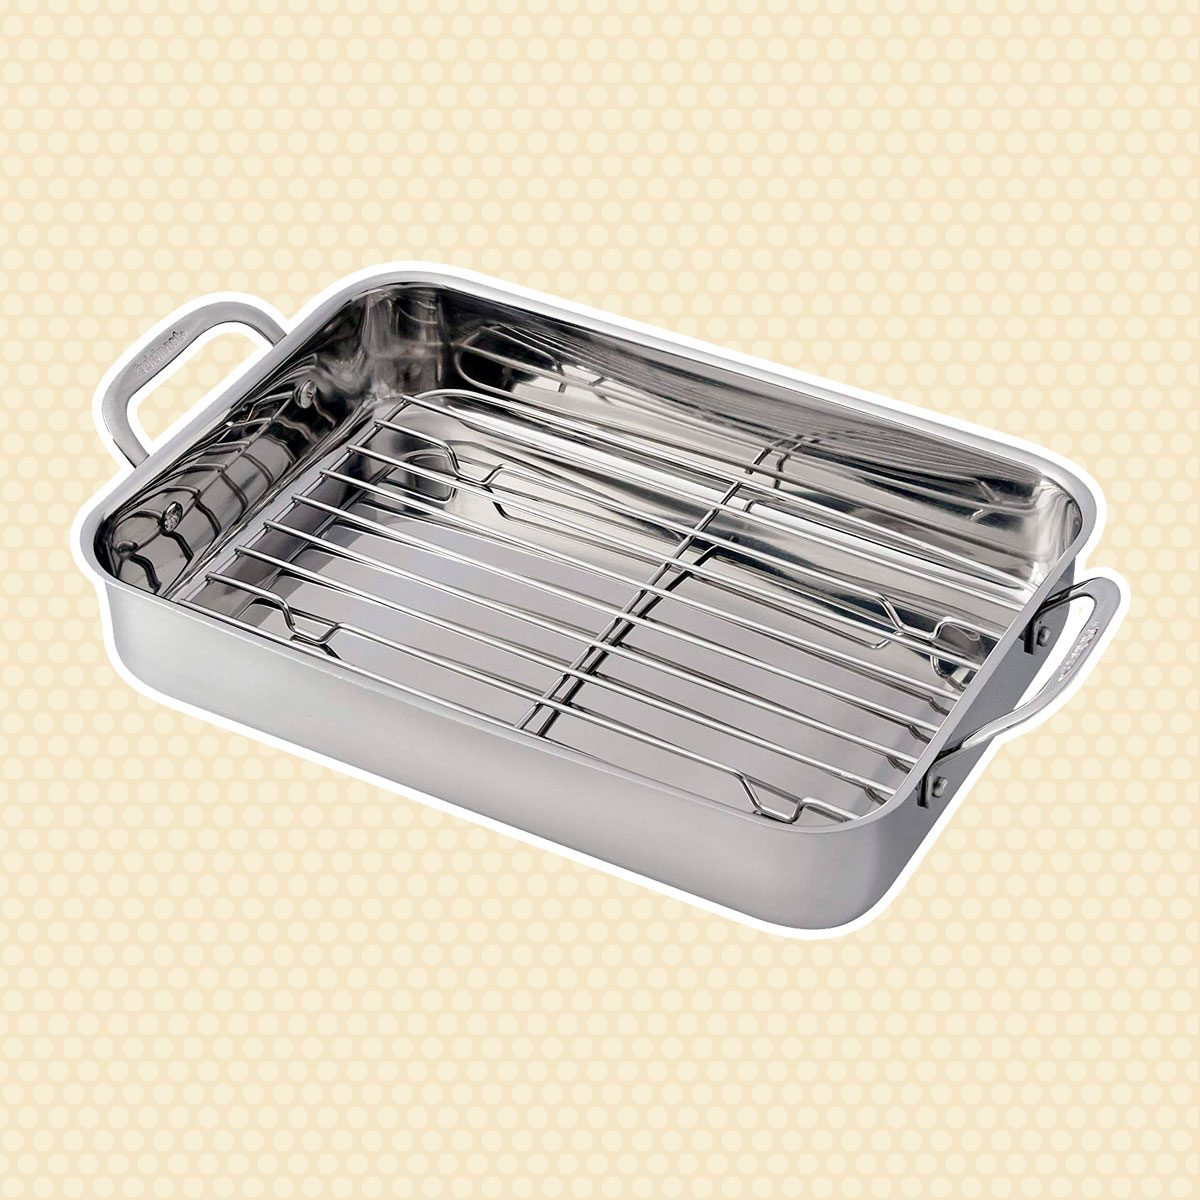 🔸Best Choice 7117-14RR Lasagna Pan with Stainless Roasting Rack